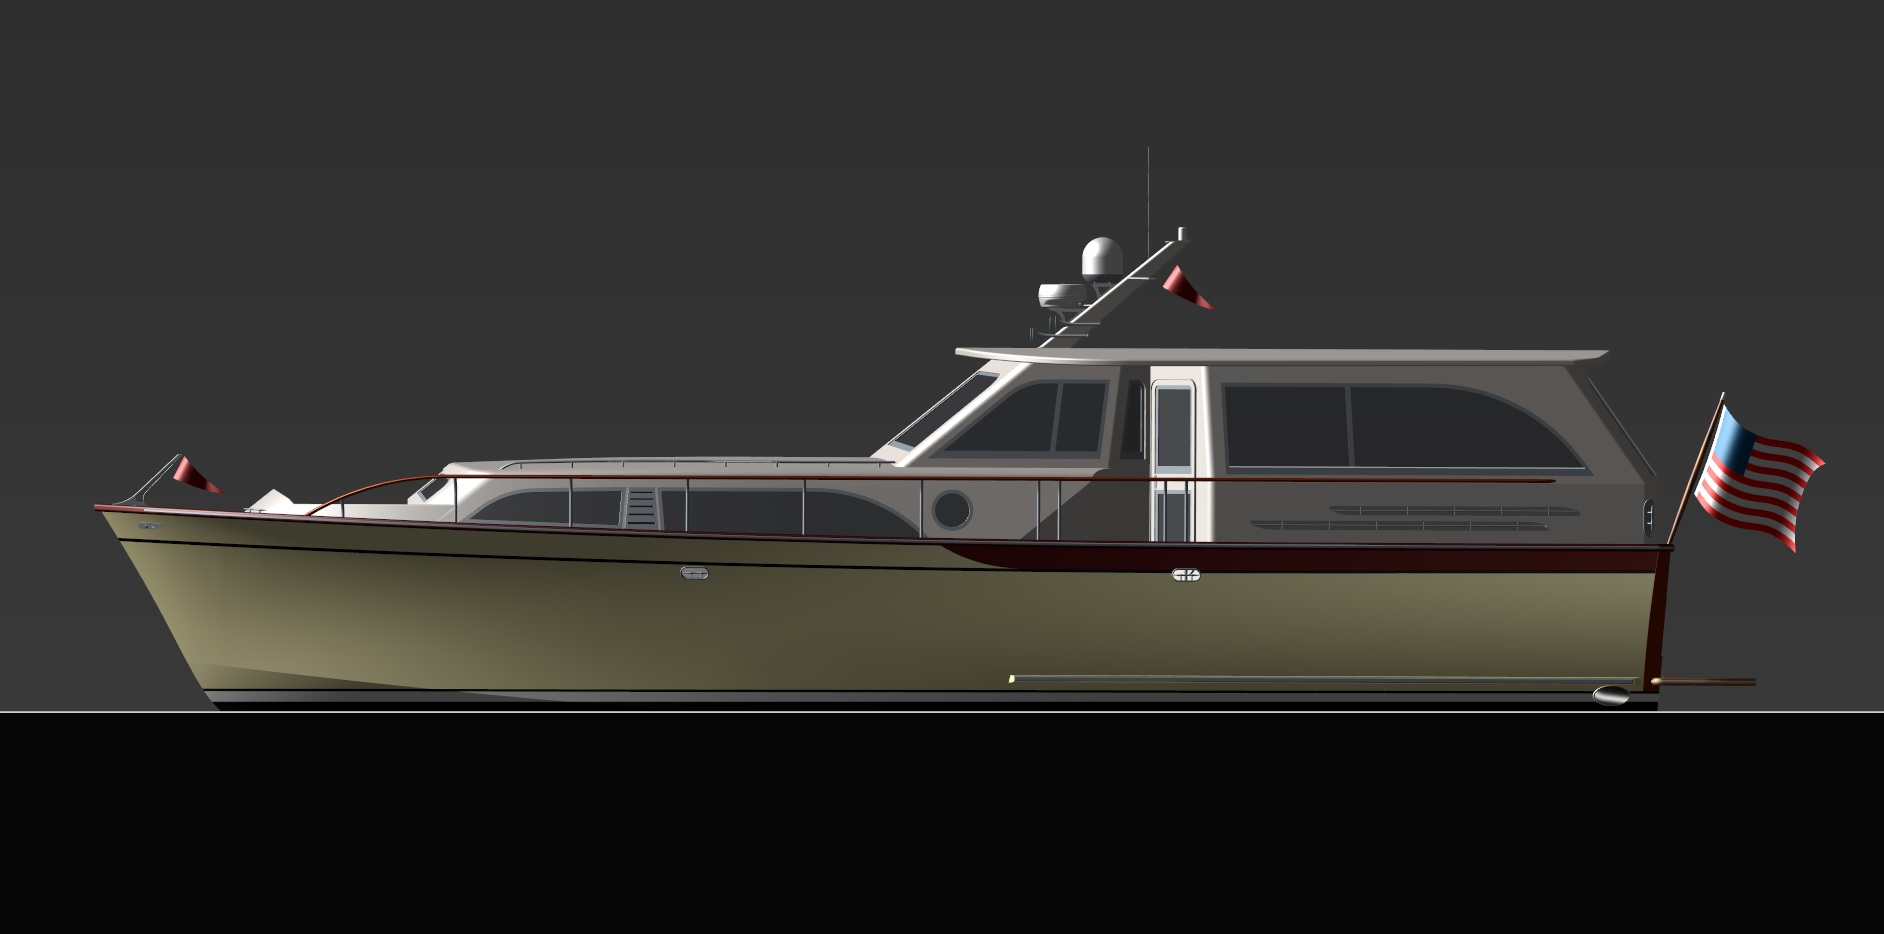 Van Dam Custom Boats sunray rendering